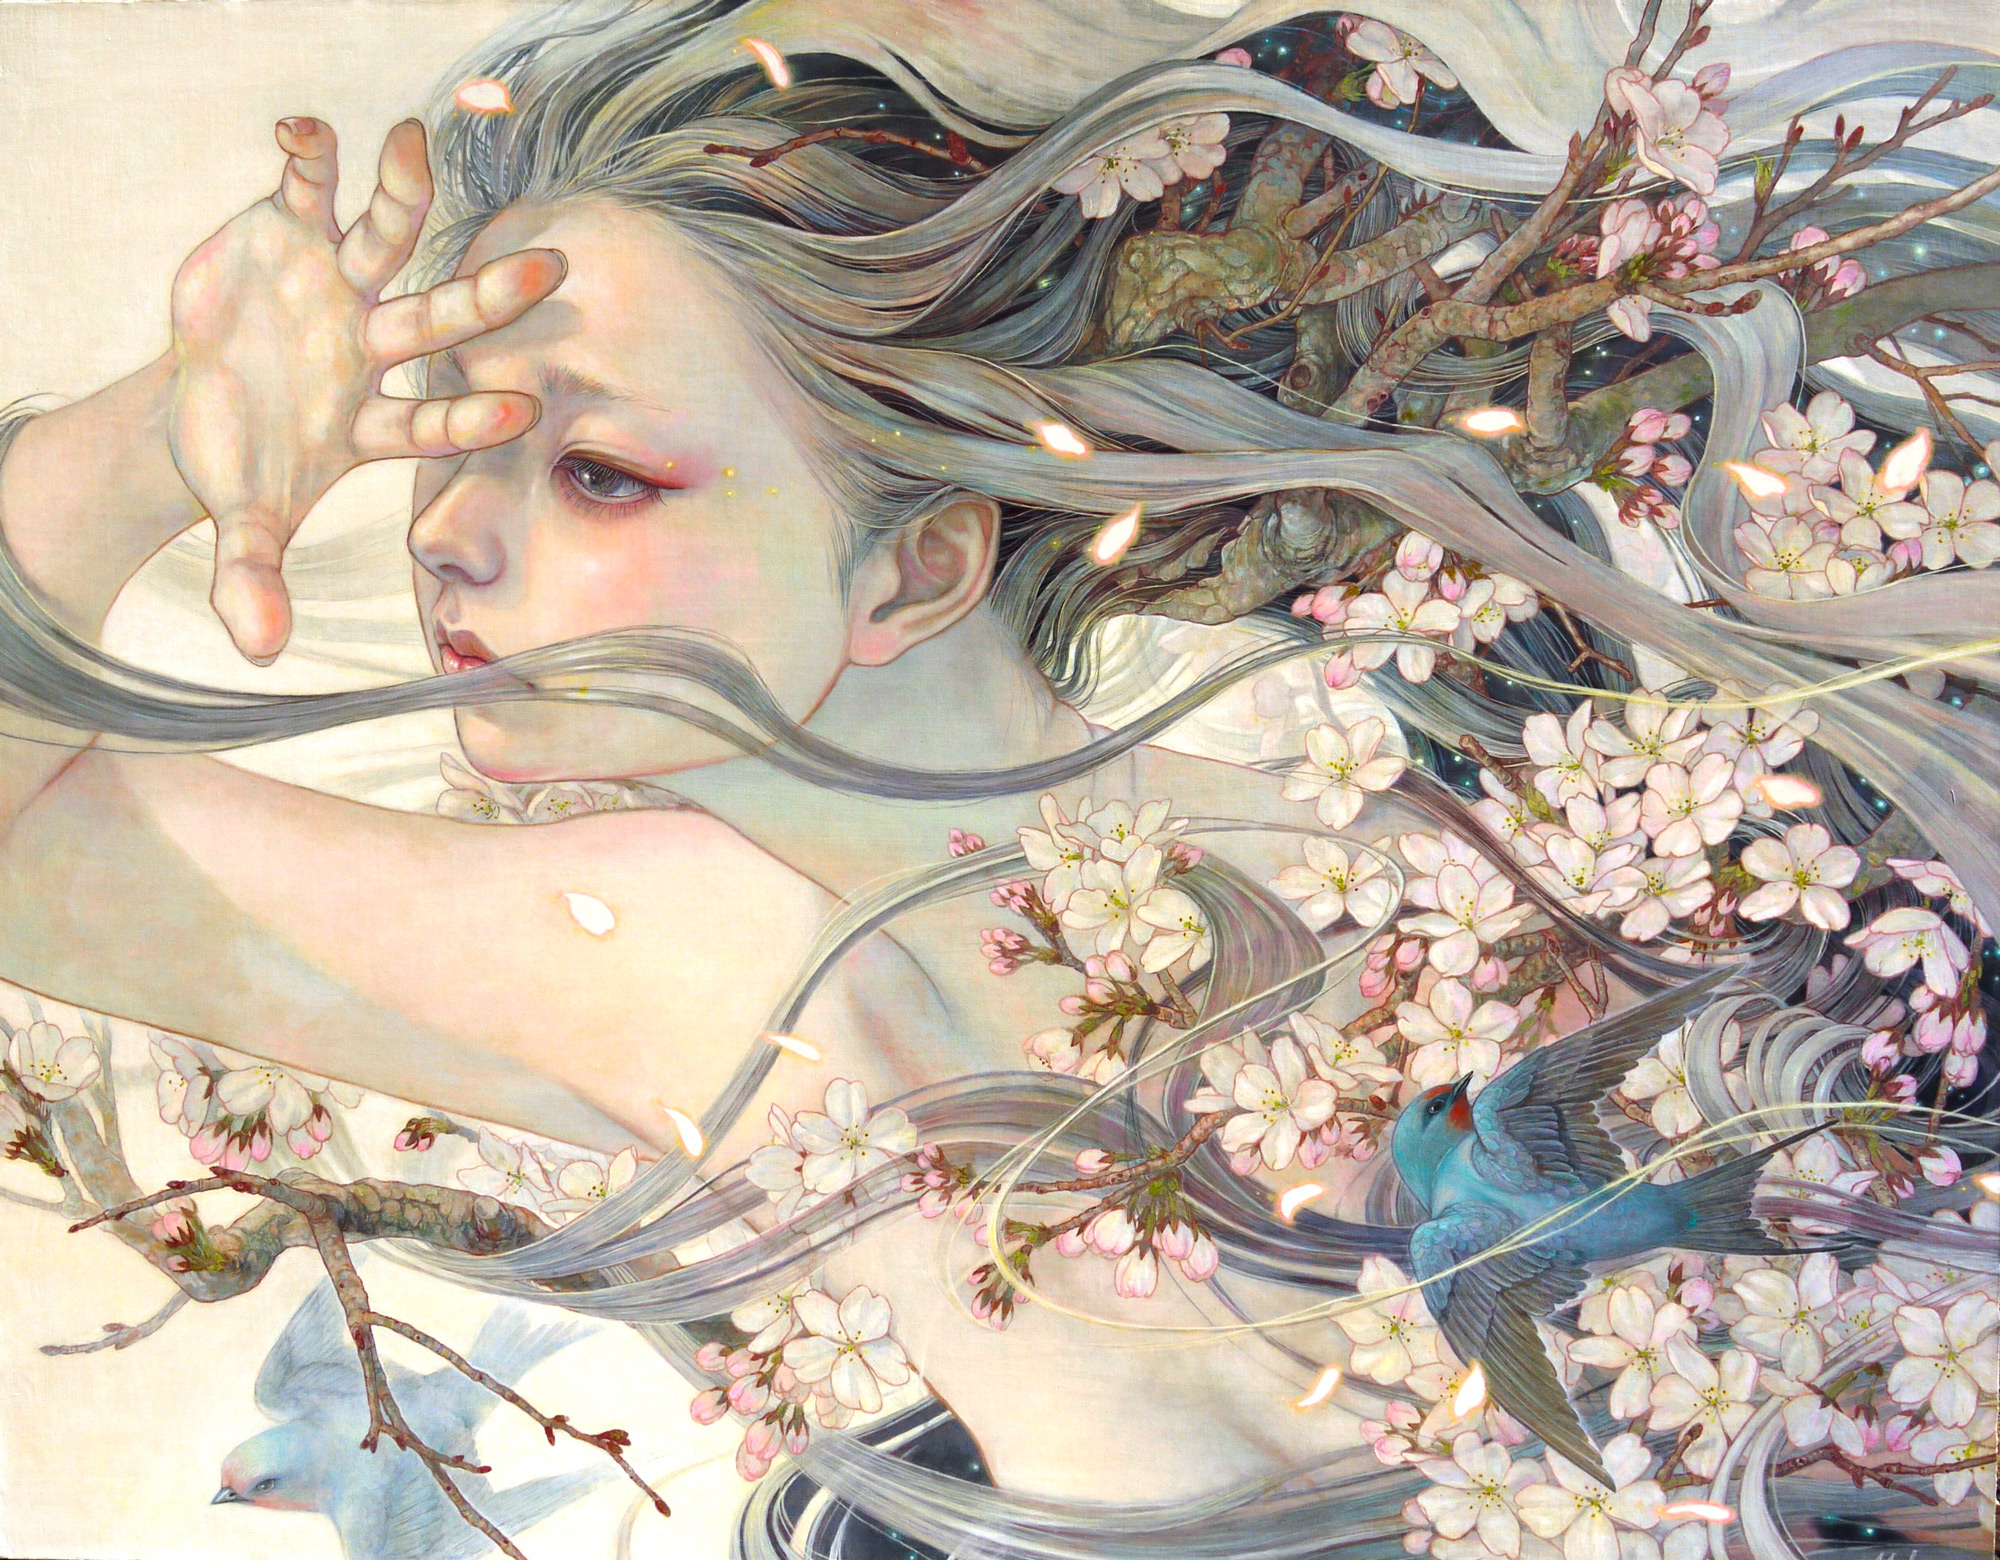 Meticulously Painted Portraits by Miho Hirano Fuse Introspective Women with Plants and Animals | Colossal